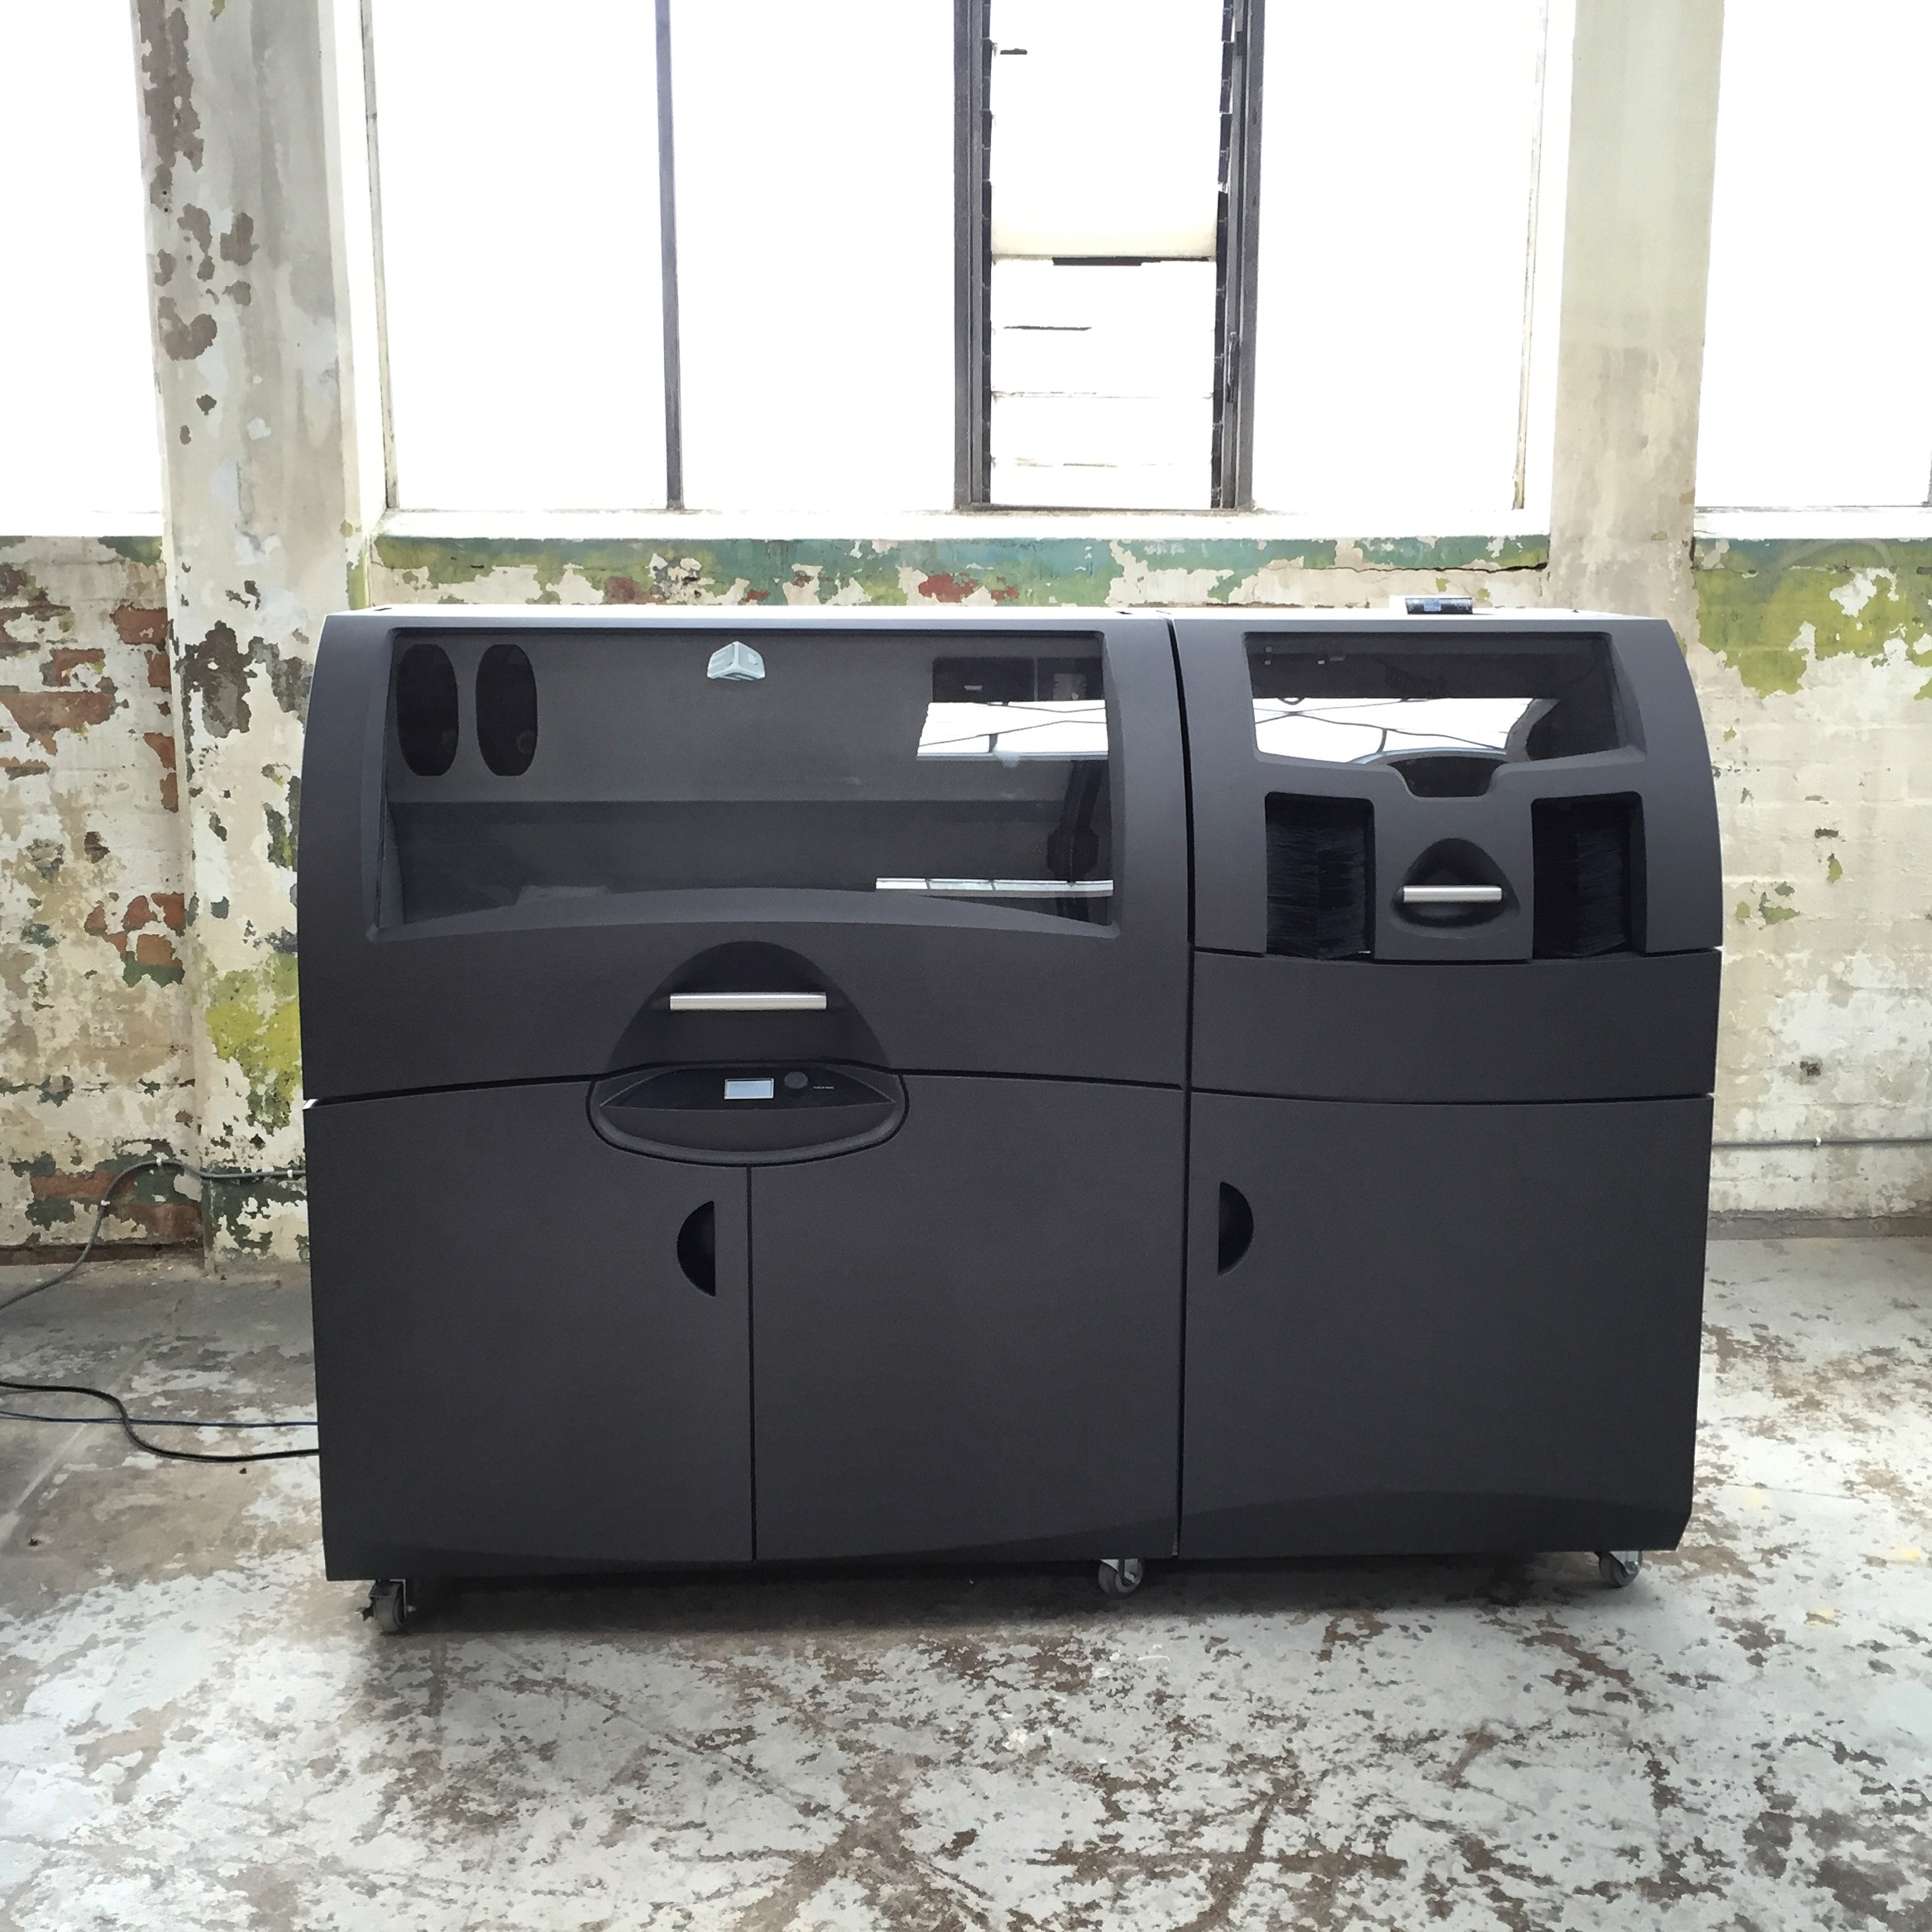 The modified 3D Systems 650 ceramic printer installed in the old Spode factory.